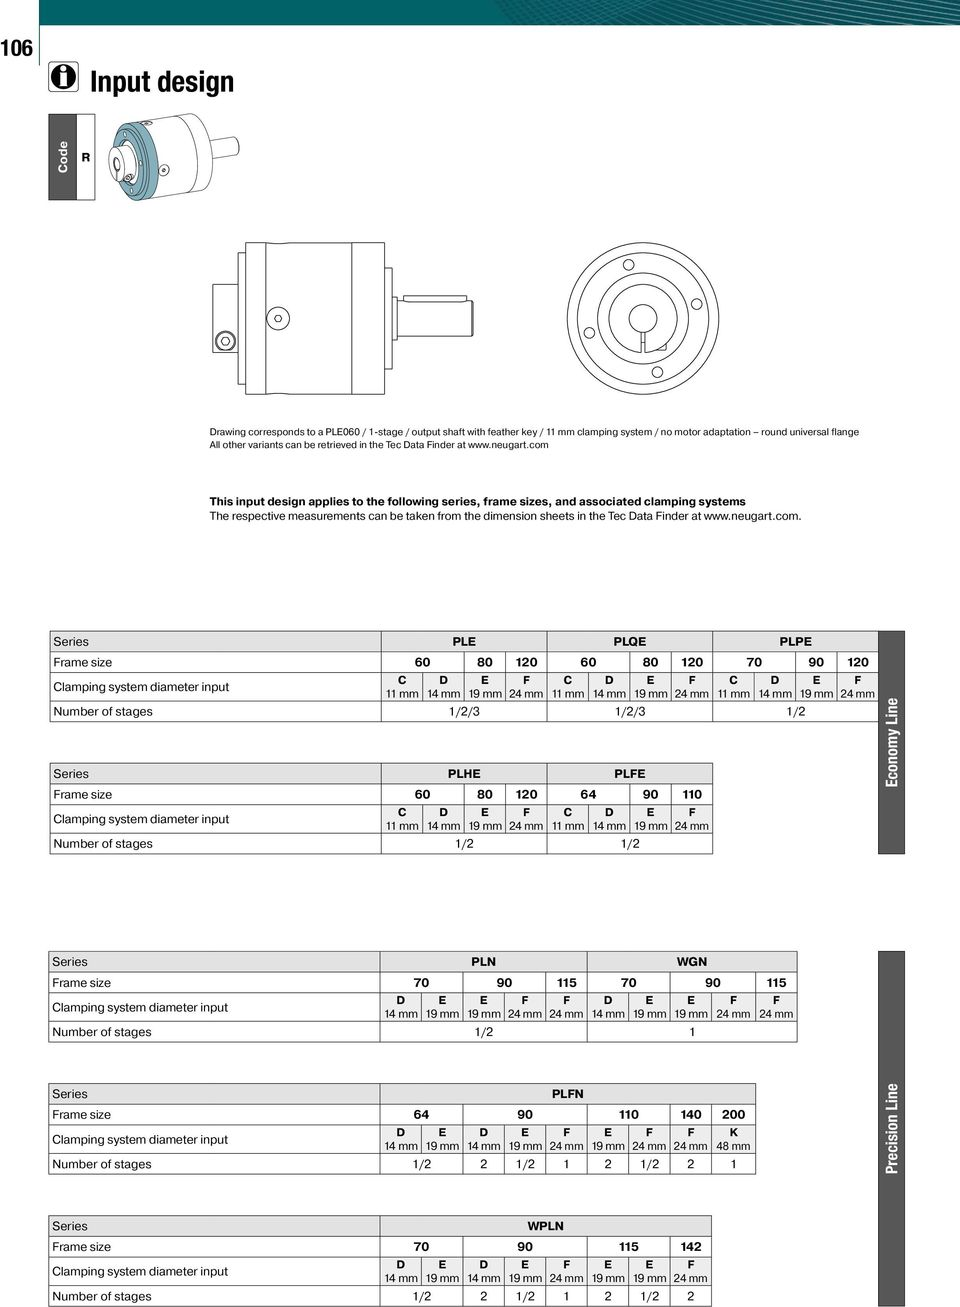 com This input design applies to the following series, frame sizes, and associated clamping systems The respective measurements can be taken from the dimension sheets in the com.